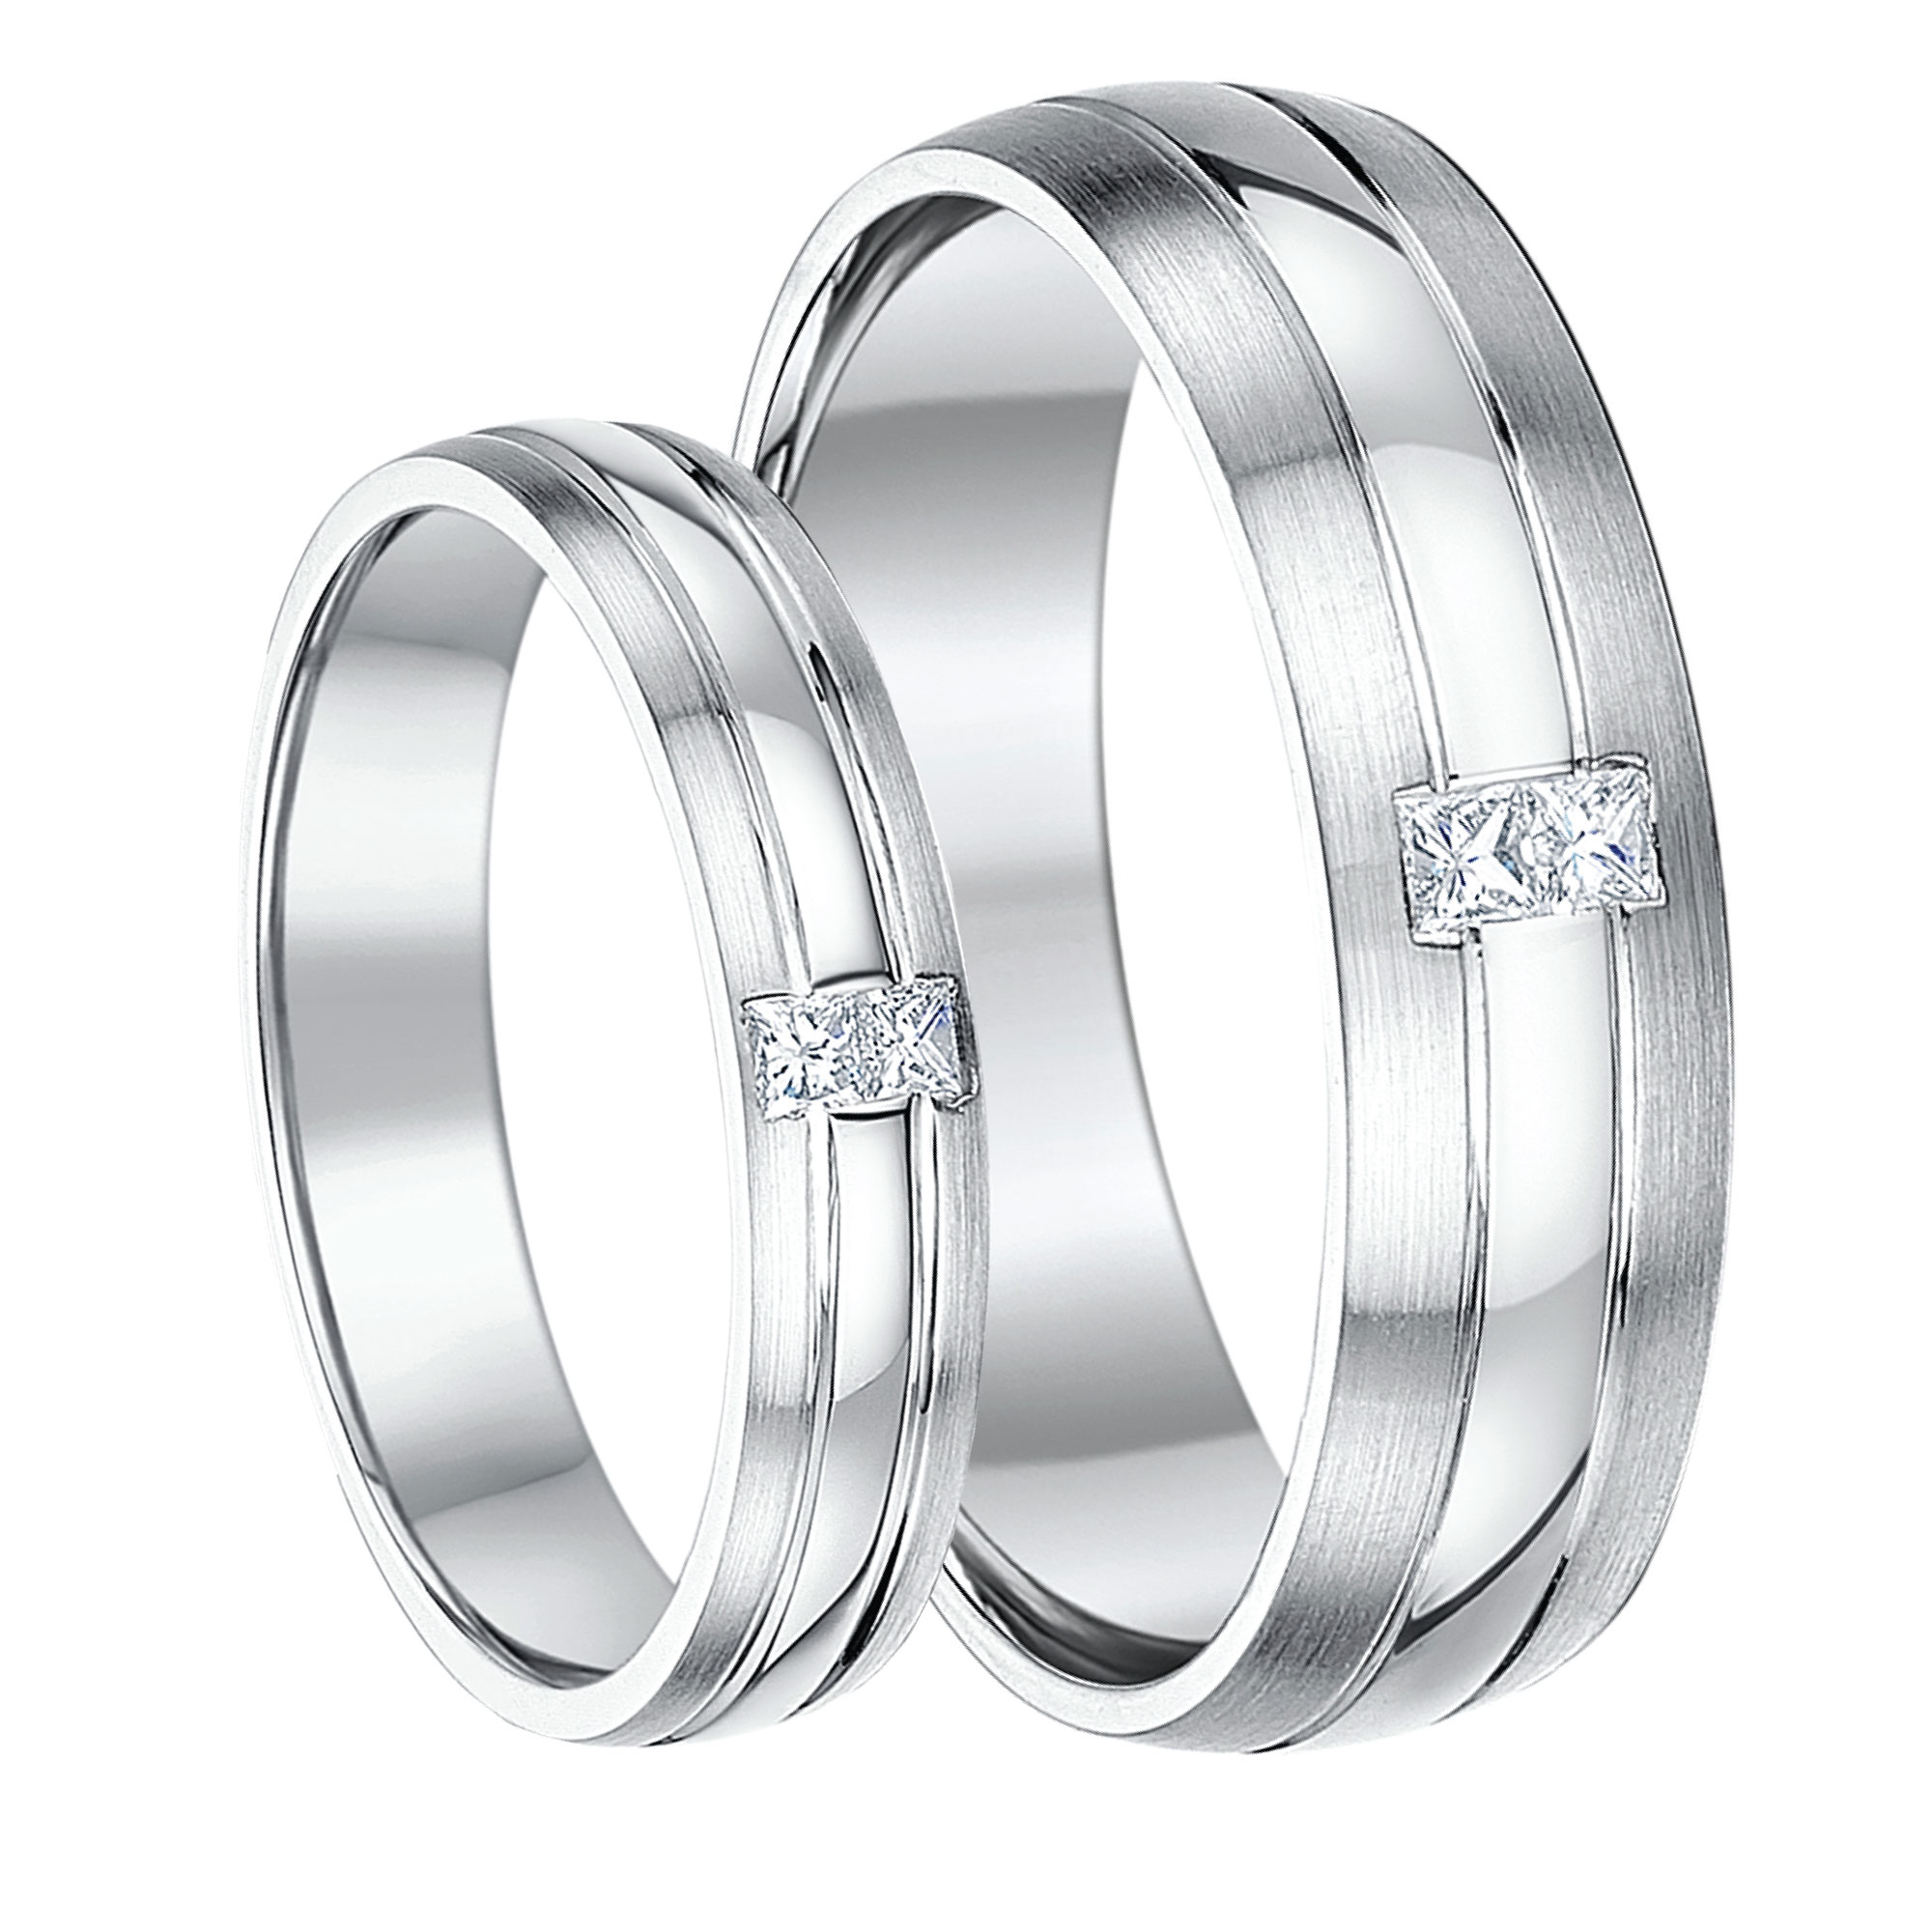 guide rings buying quality diamonds guides groom cut ring wedding expert style advice